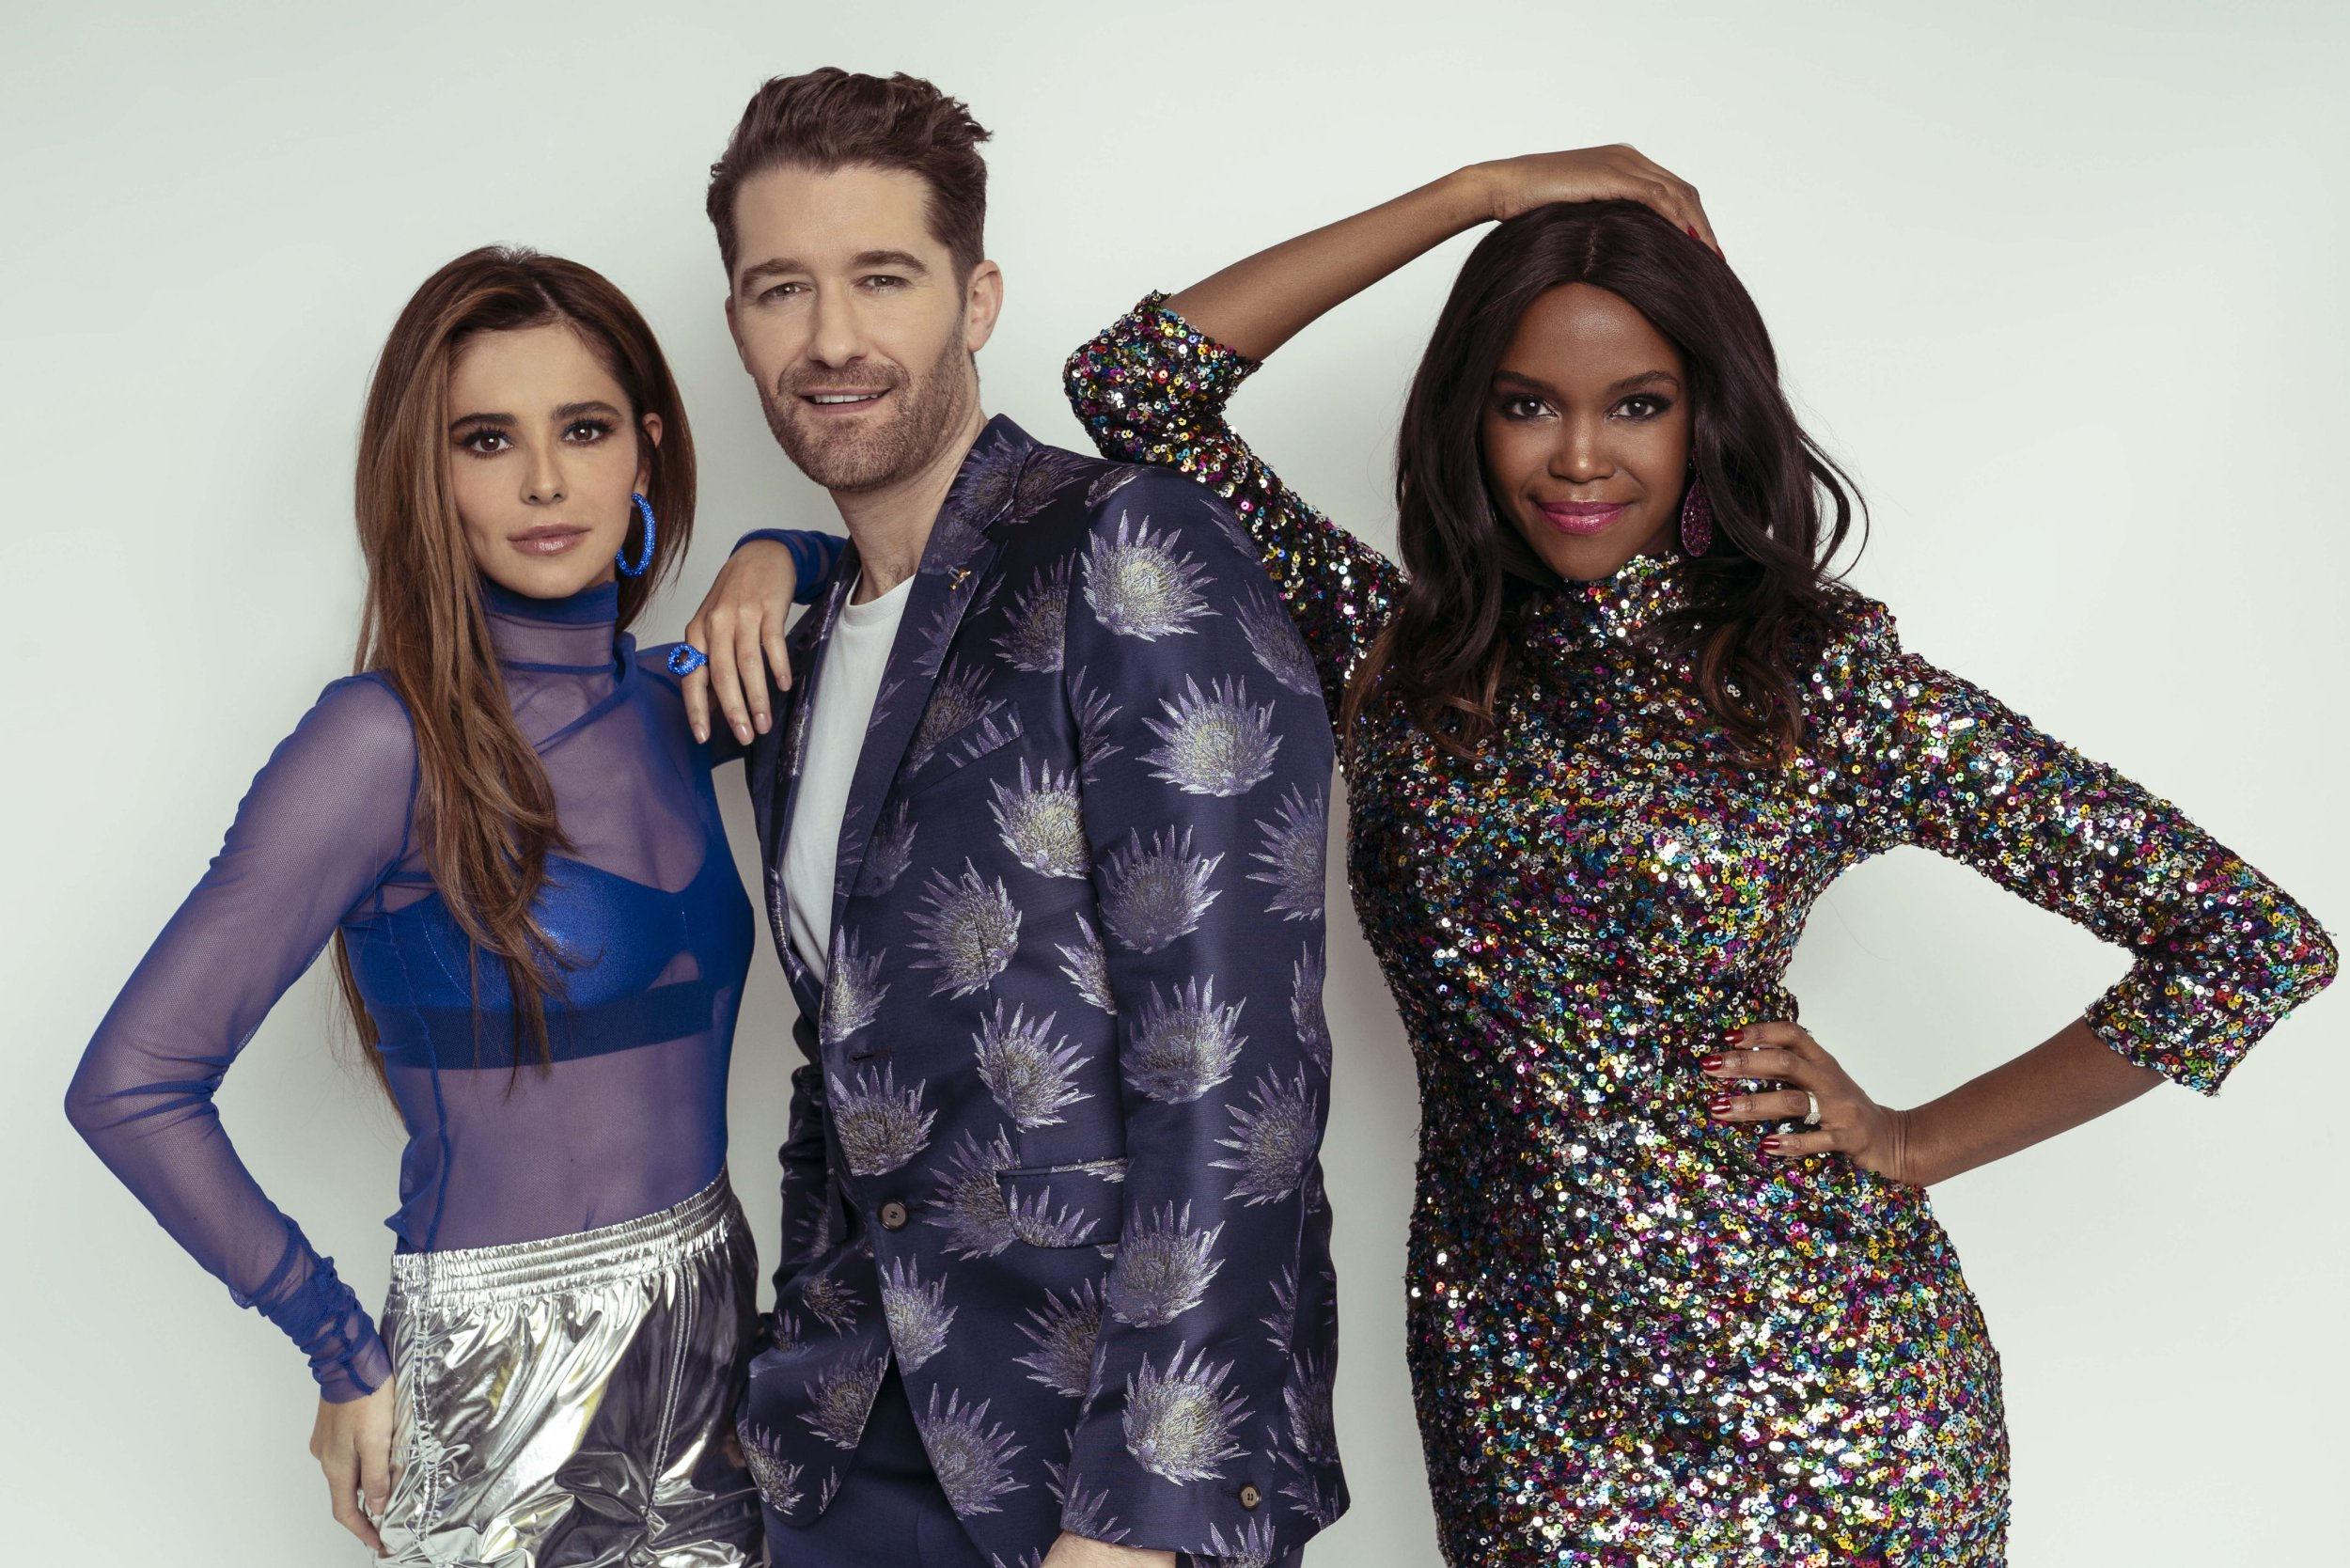 Cheryl, Matthew Morrison and Oti Mabuse in The Greatest Dancer